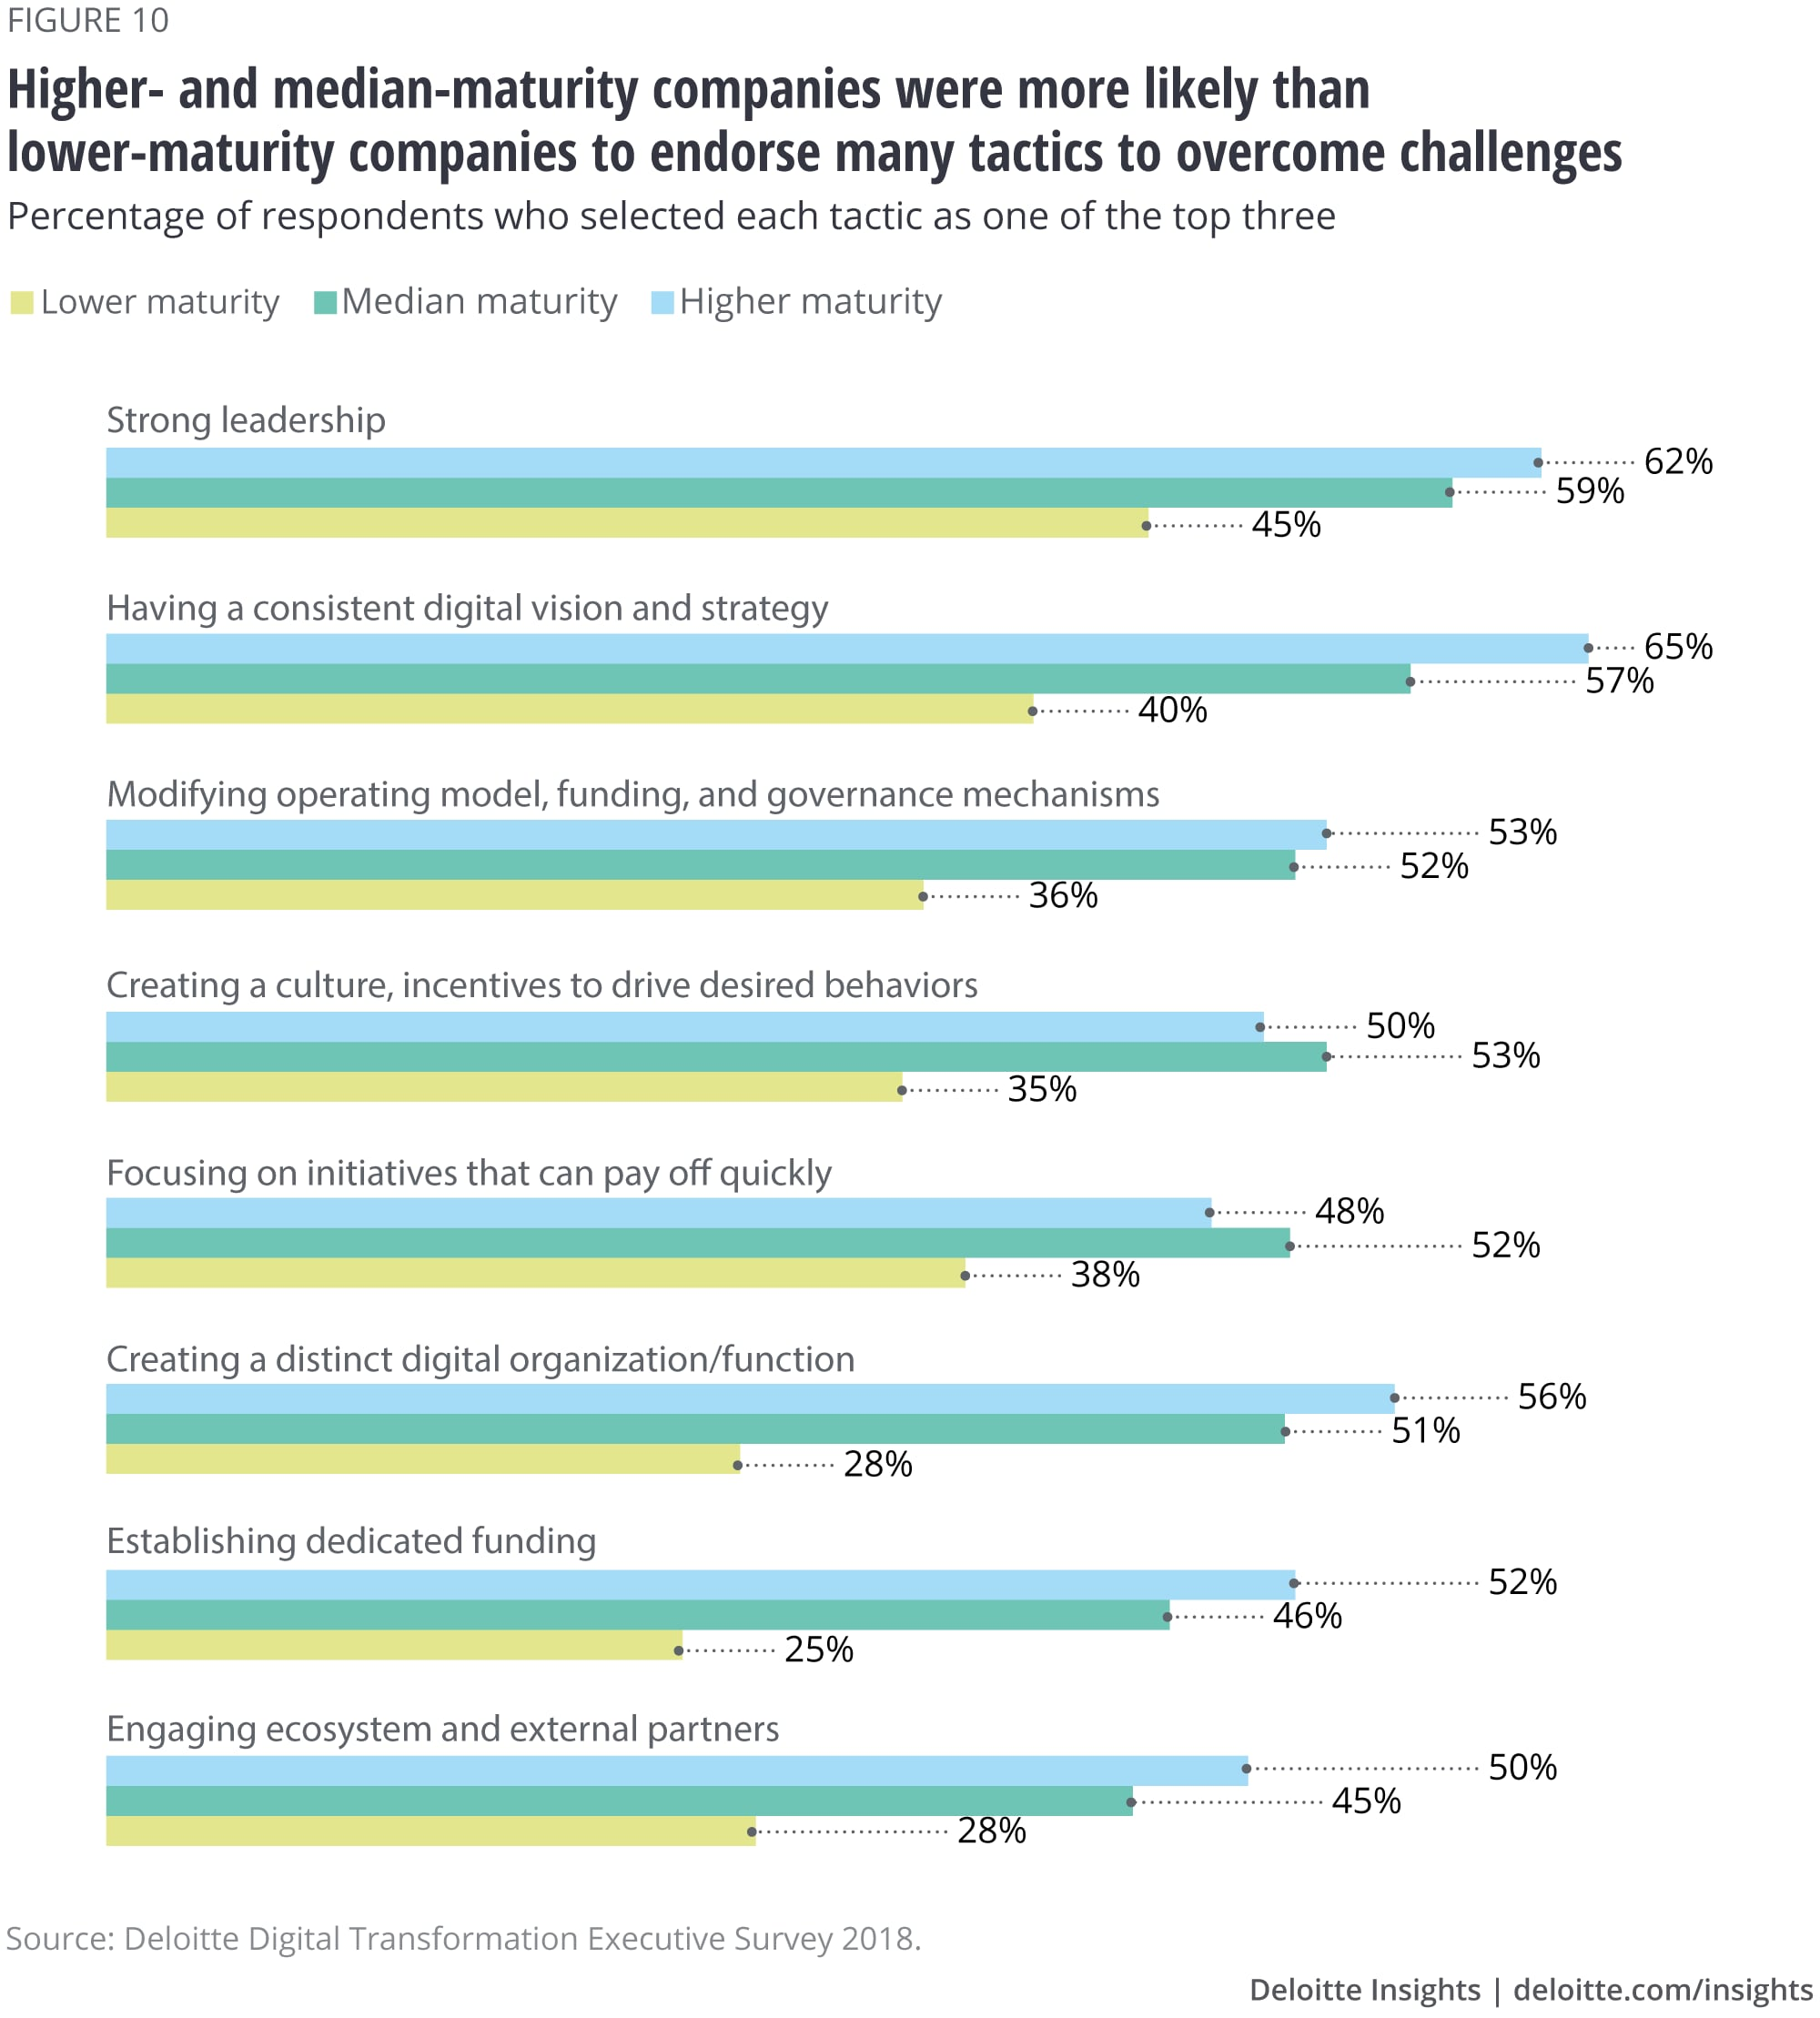 Higher- and median-maturity companies were more likely than lower-maturity companies to endorse many tactics to overcome challenges